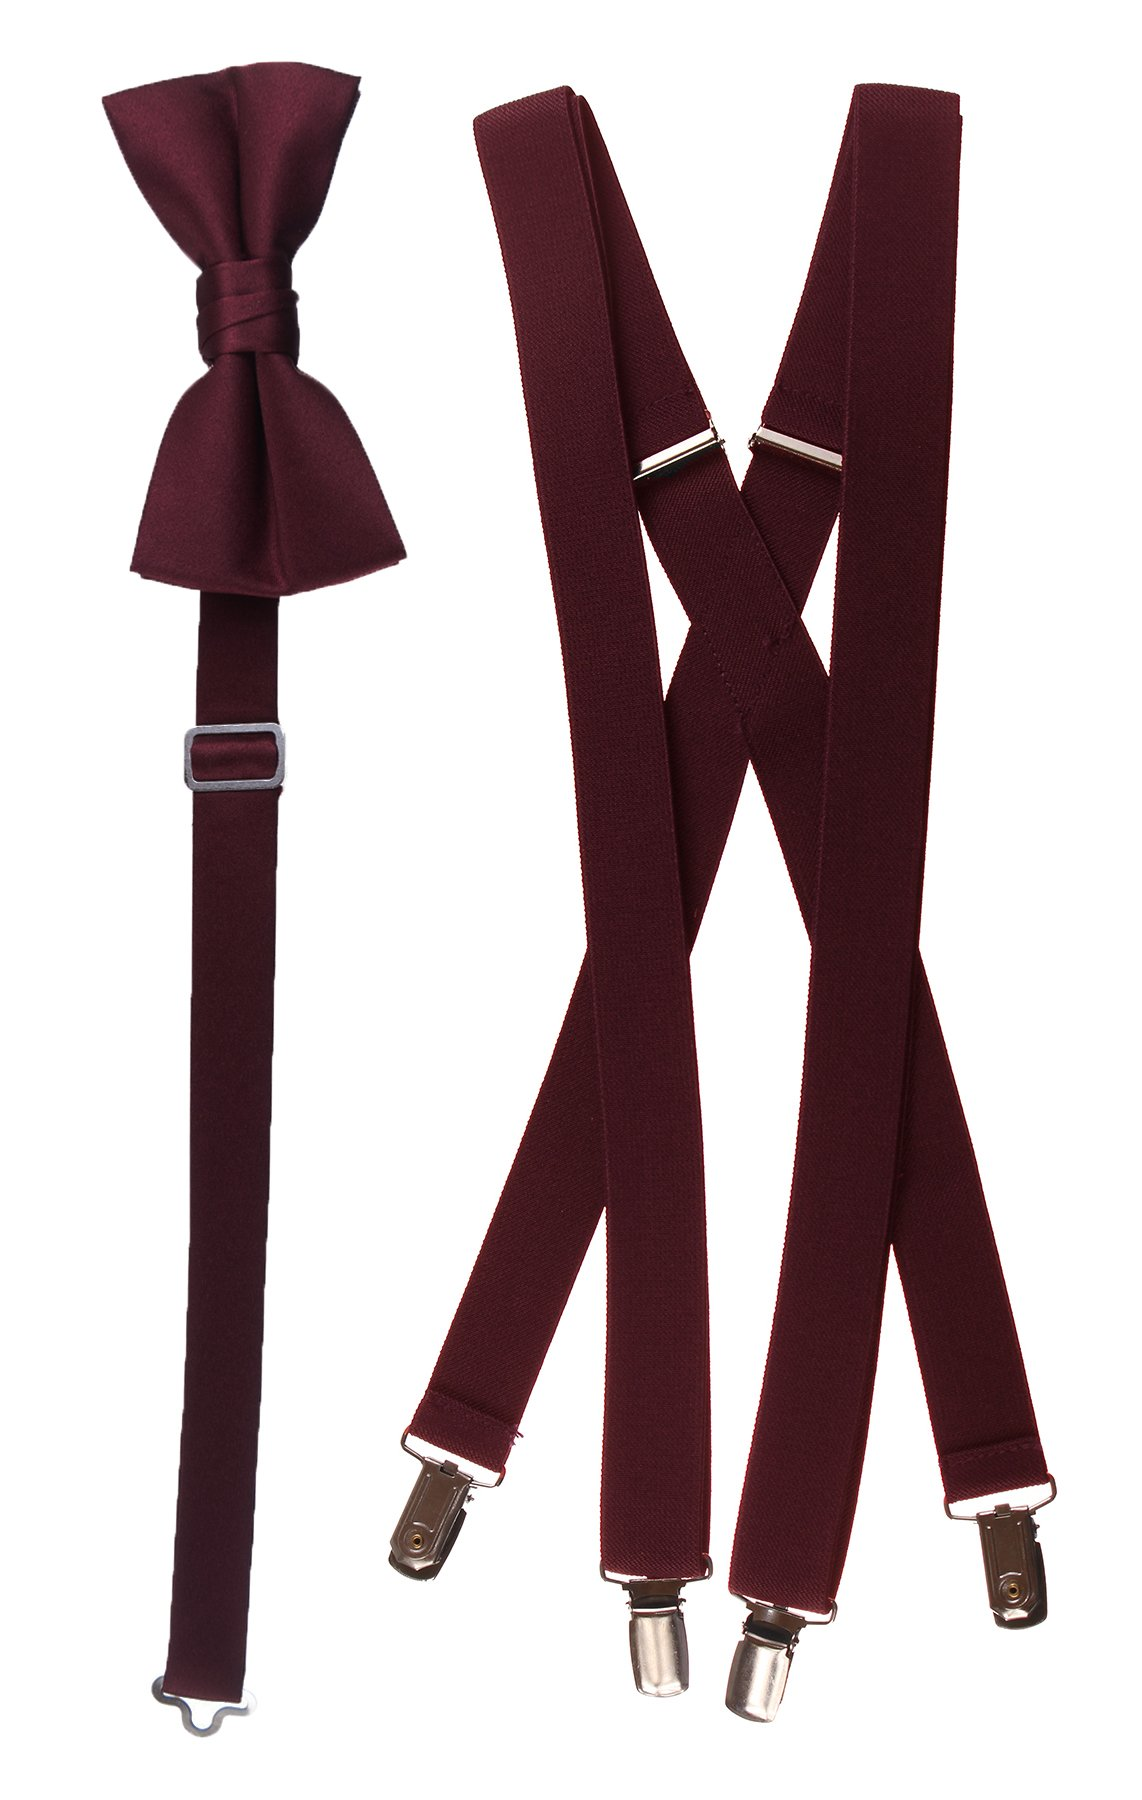 Bow Tie and Suspender Set Combo in Men's & Kids Sizes (48'' Men's, Burgundy)